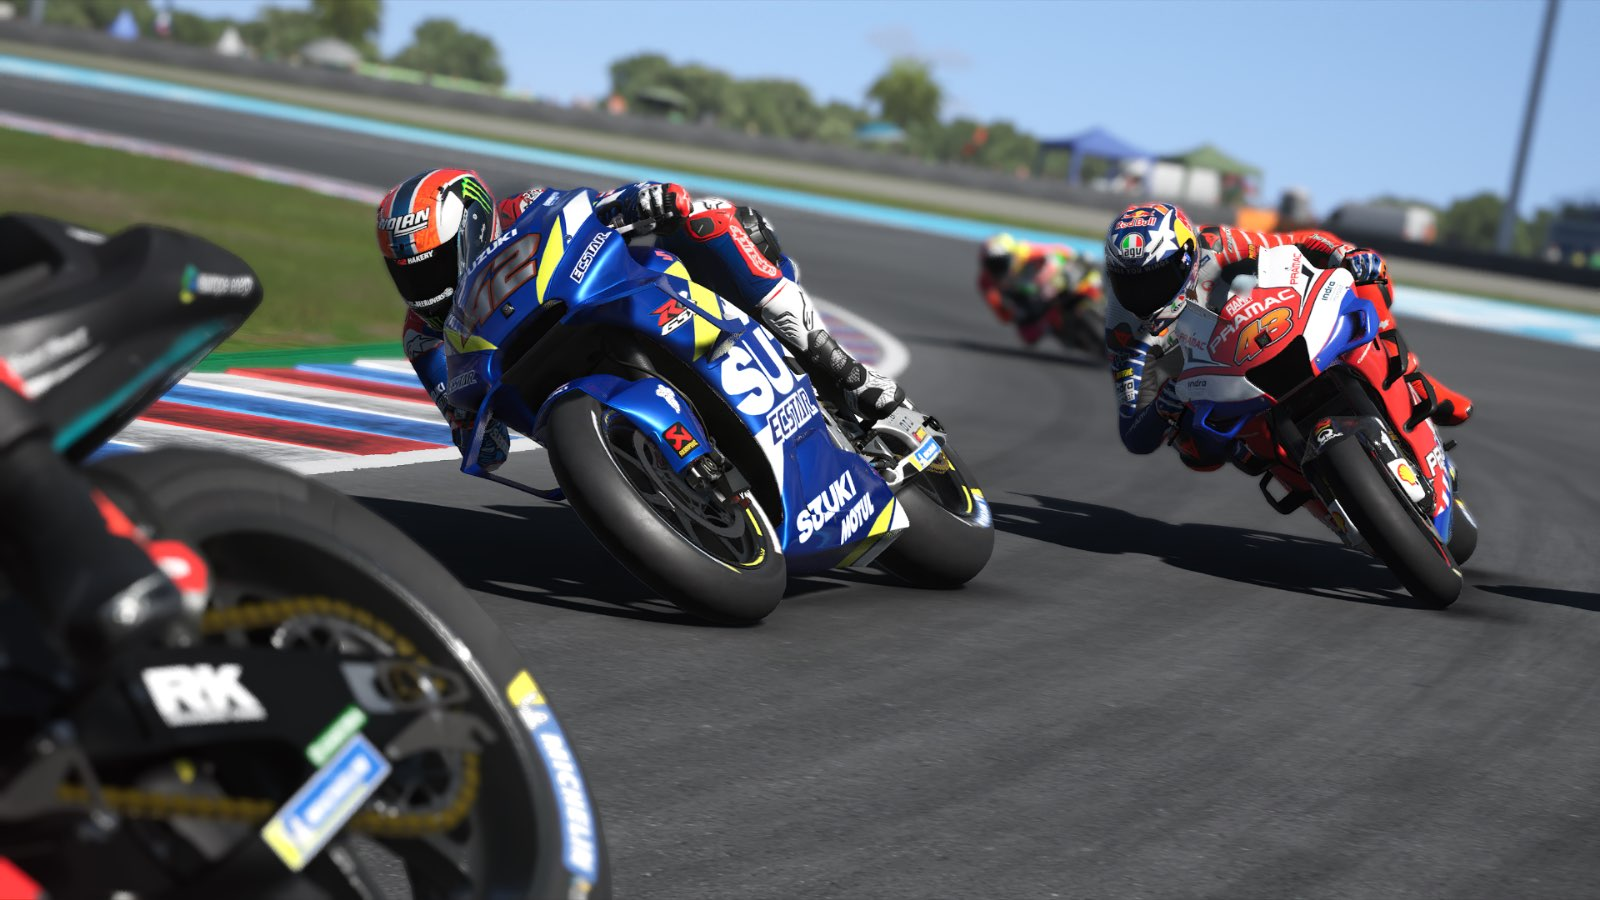 MotoGP20 Videogame - Managerial Career